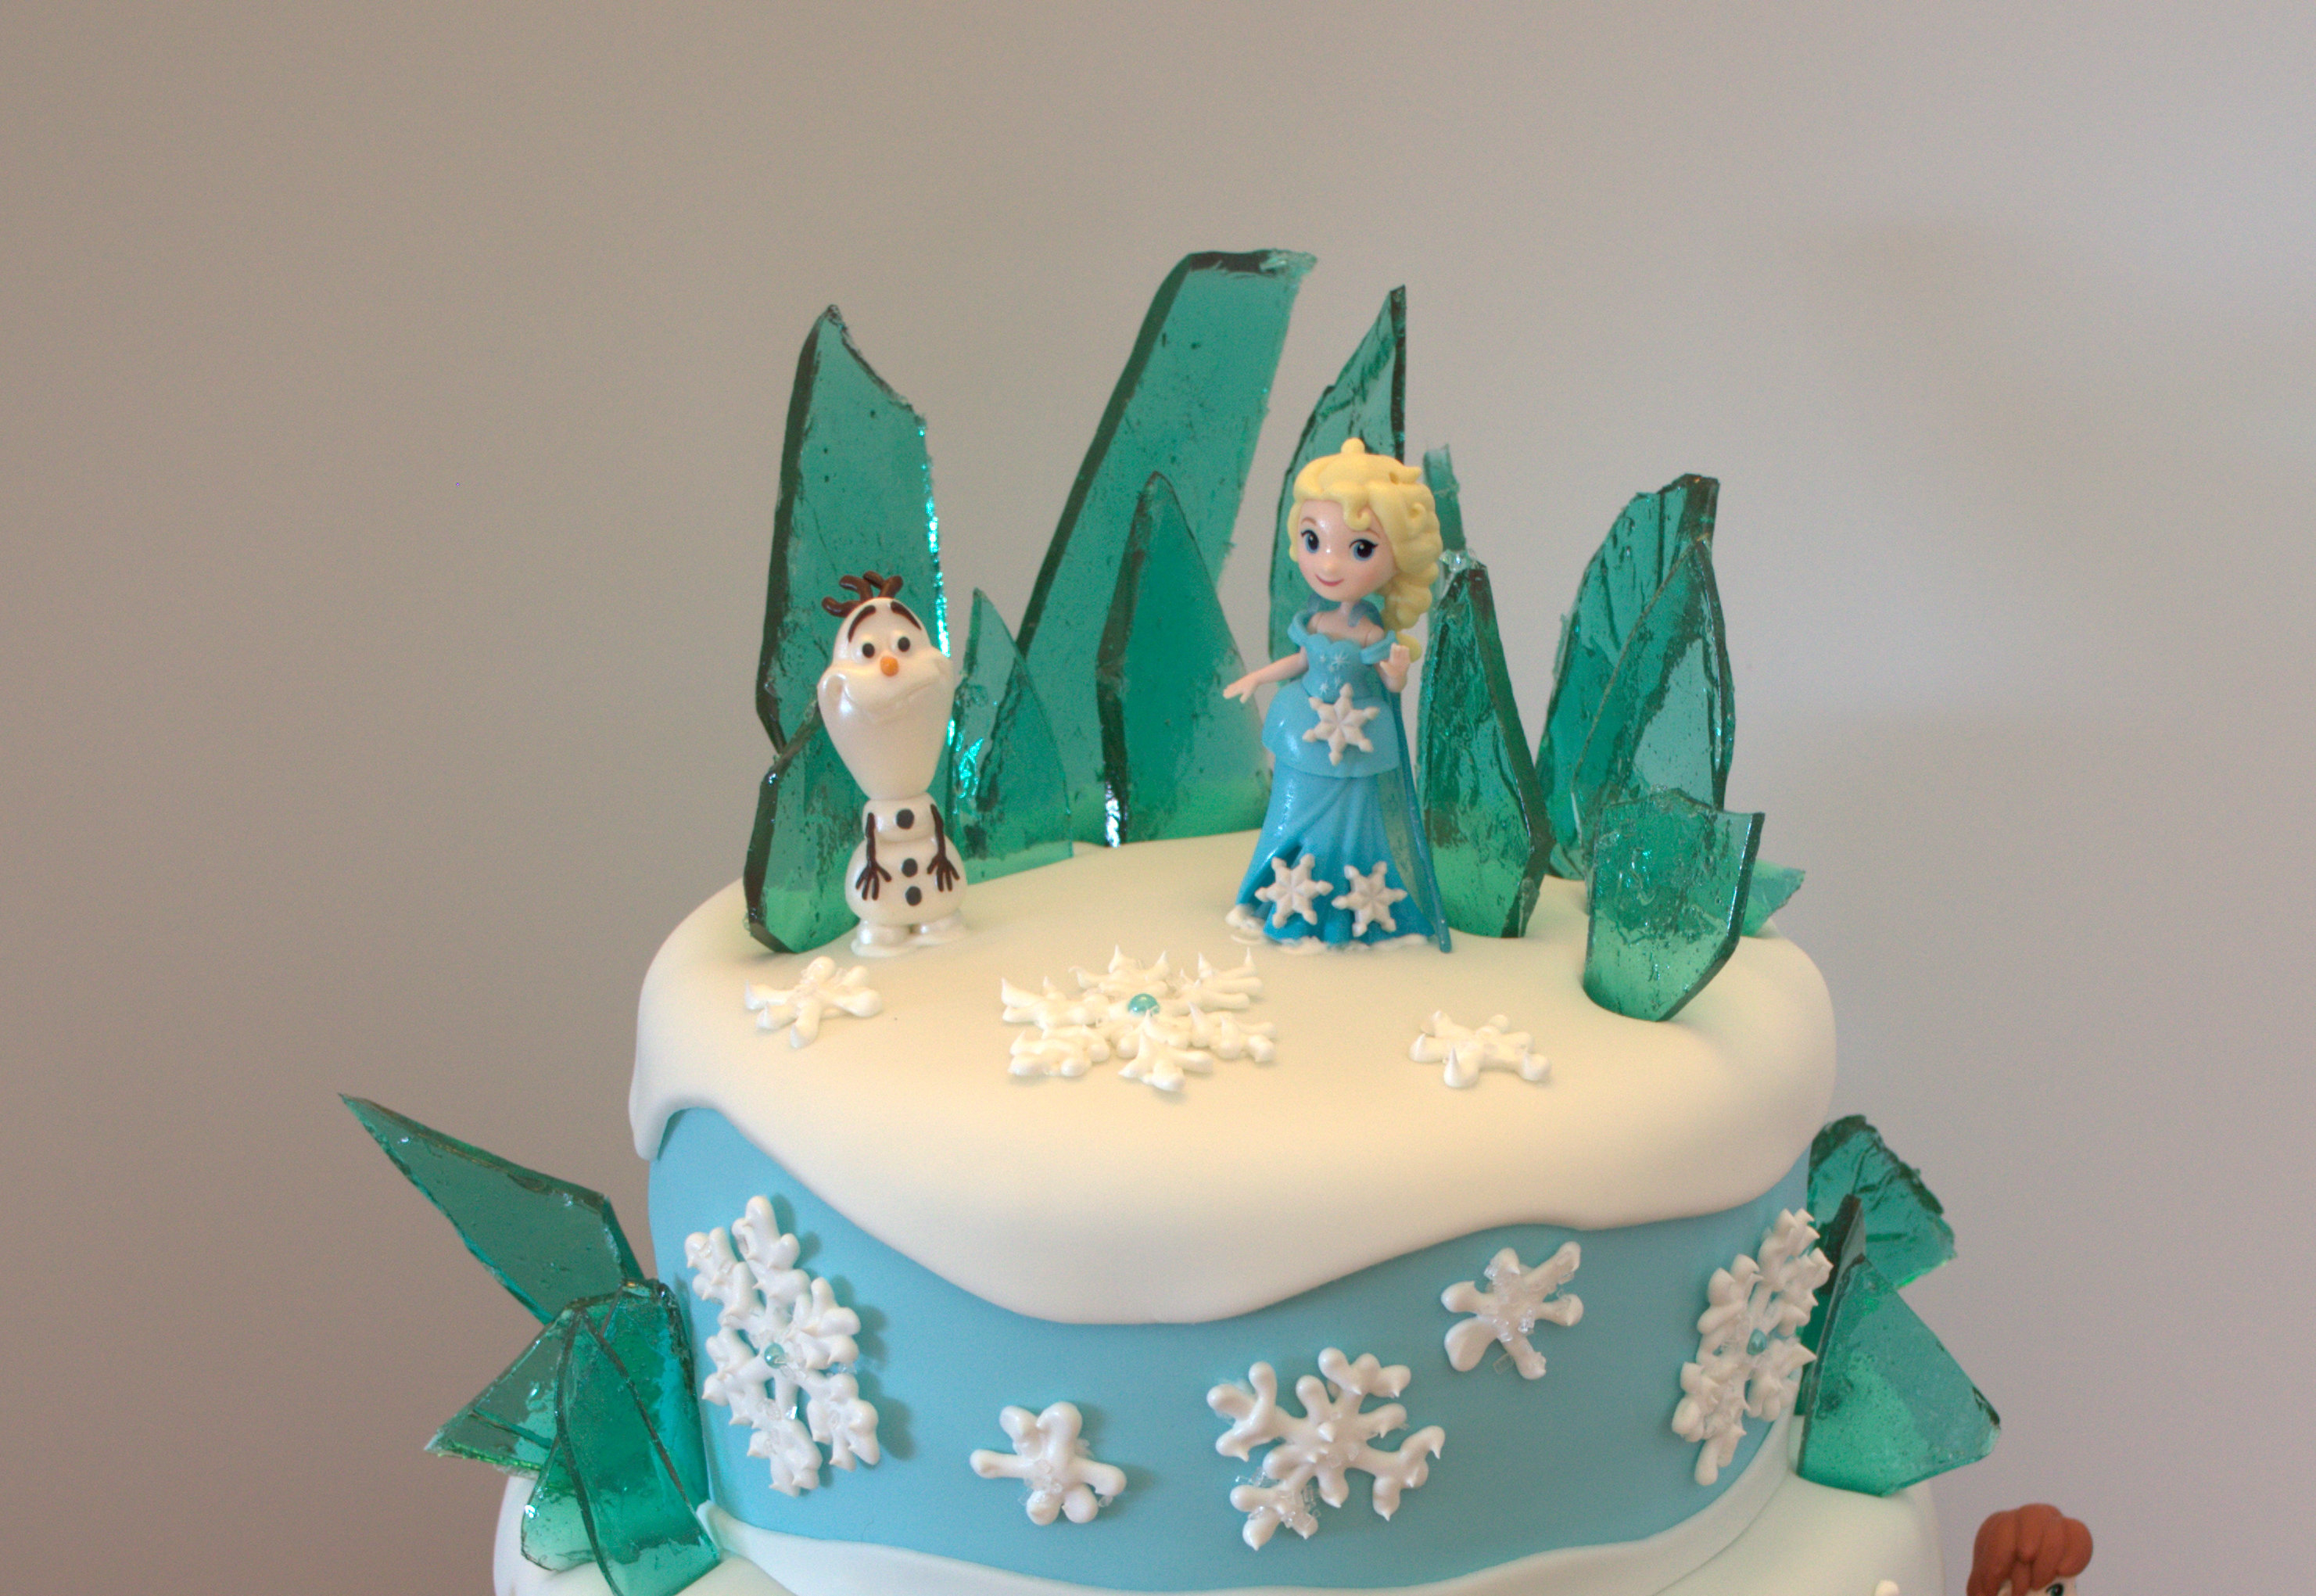 Frozen Themed Birthday Cakes Frozen Themed Birthday Cake A Little Of This And A Little Of That